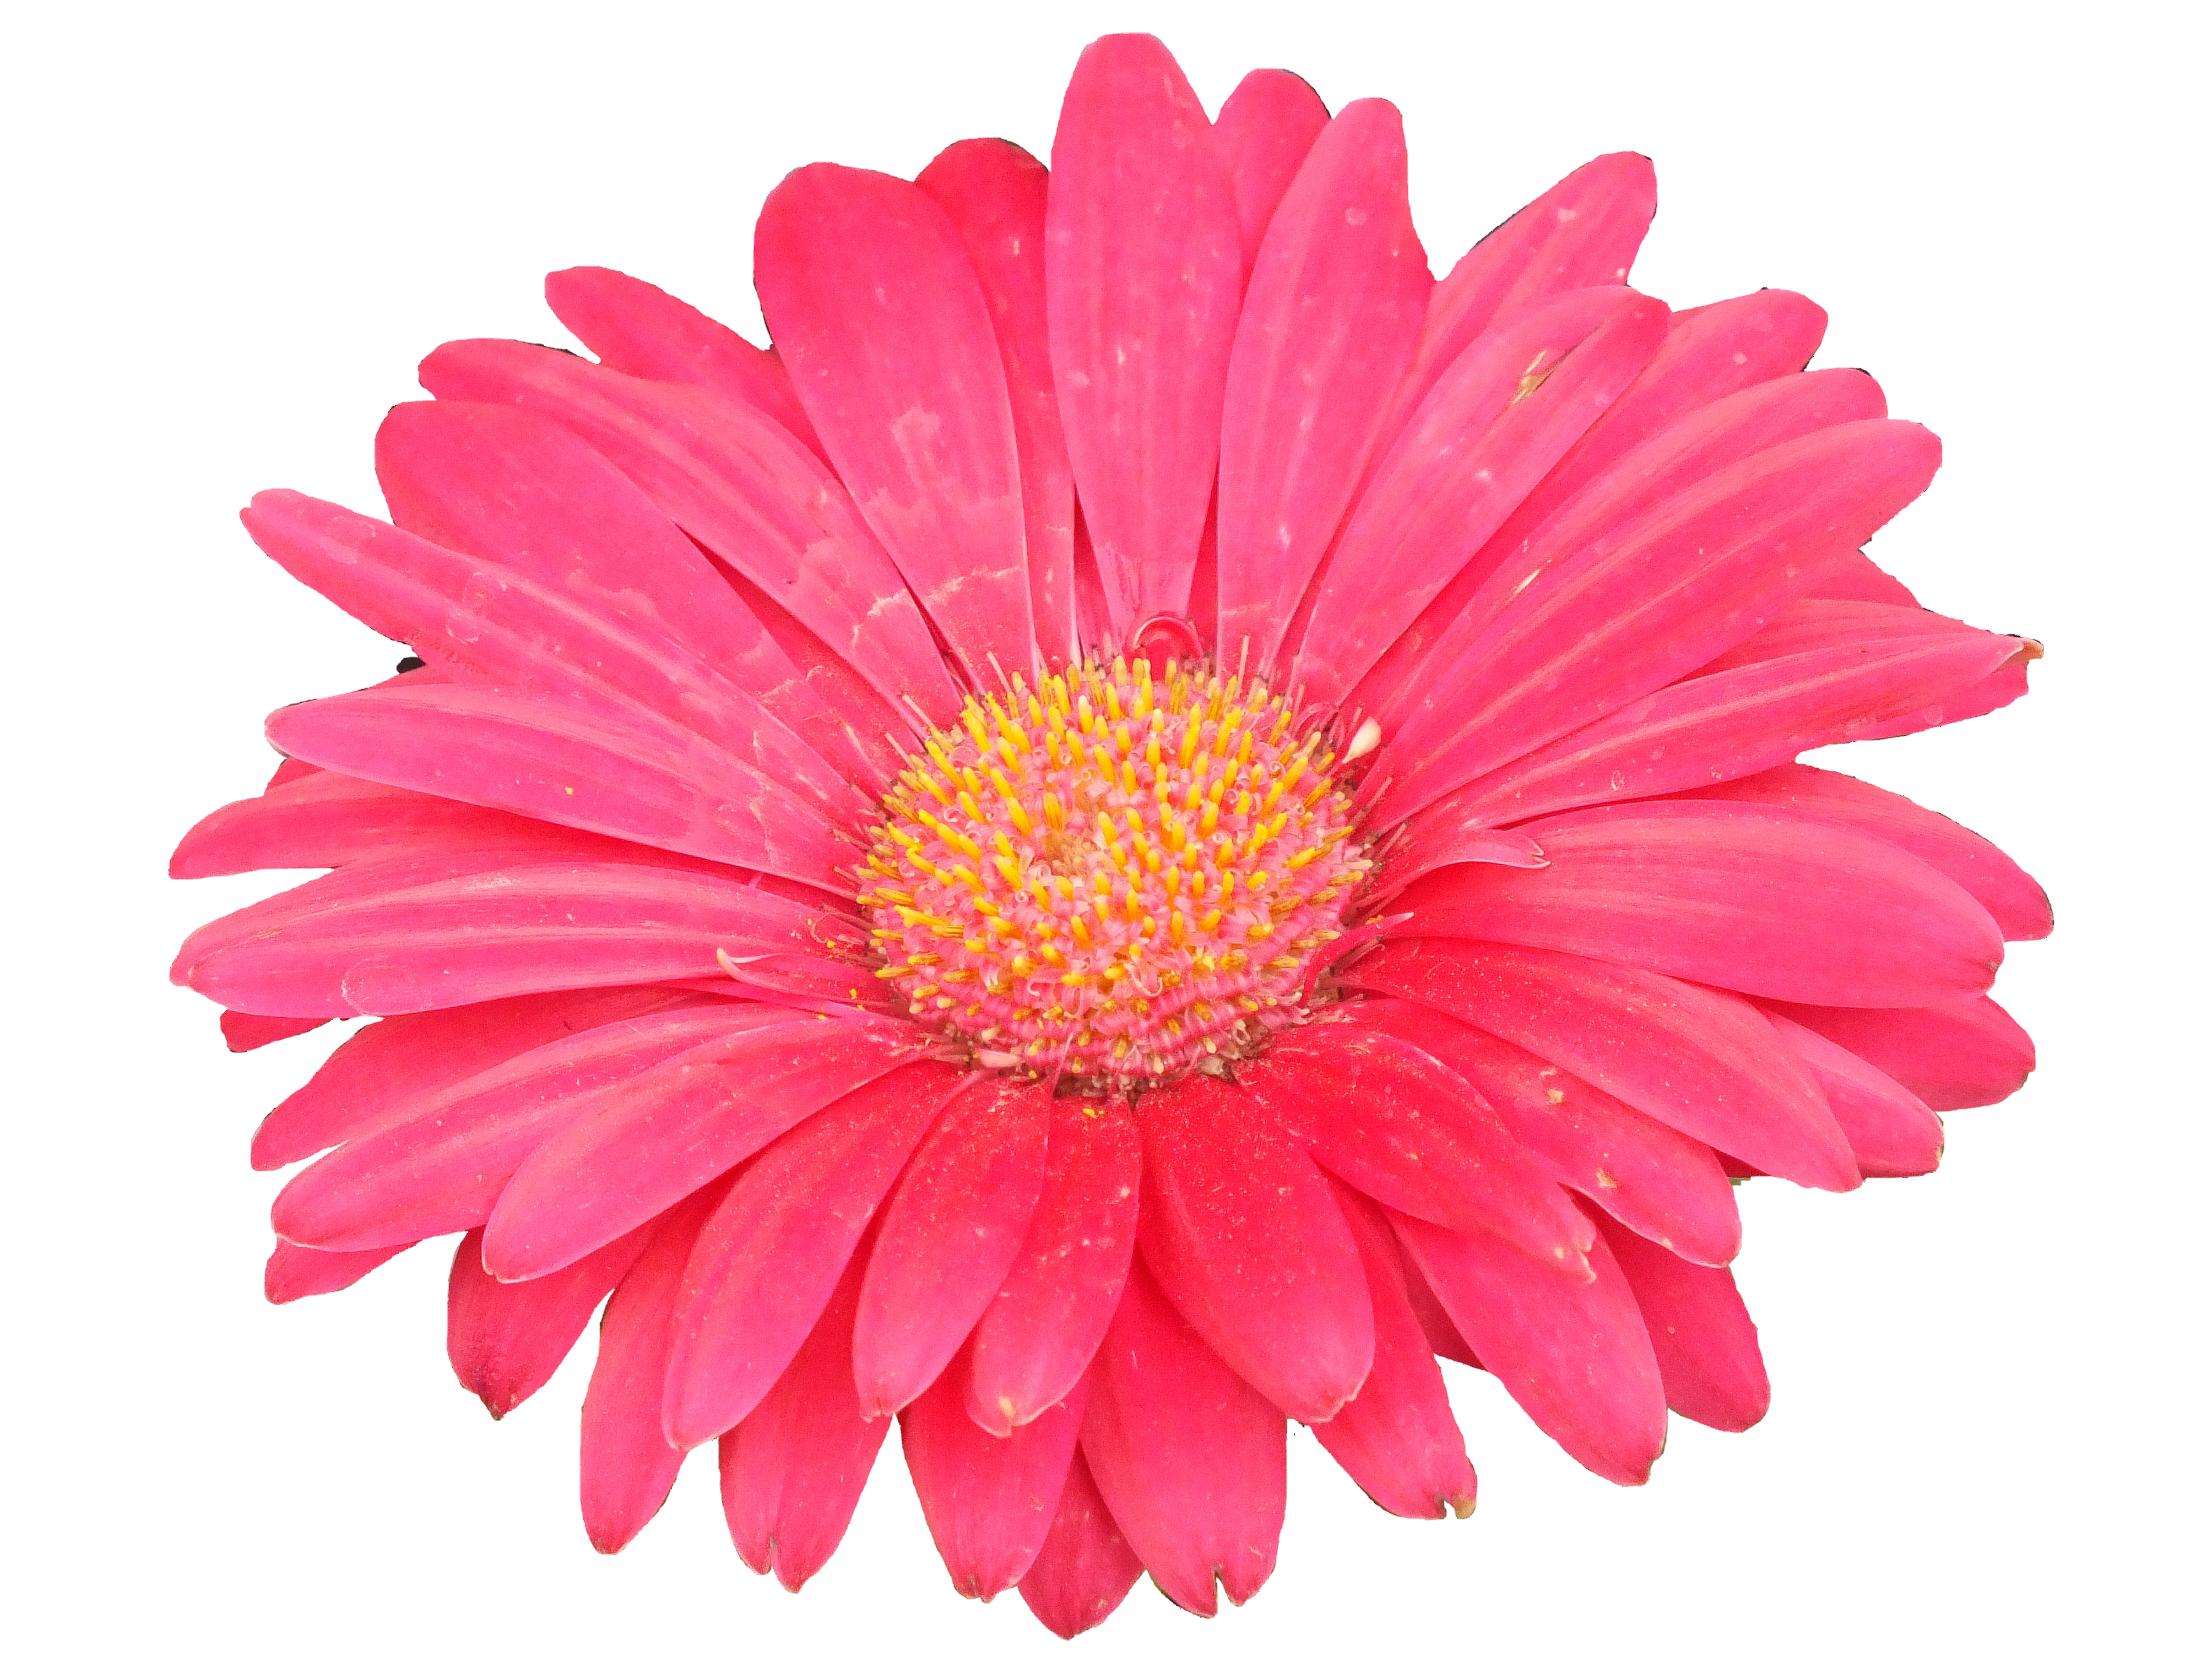 Aster flower clipart picture library stock Flowers picture library stock